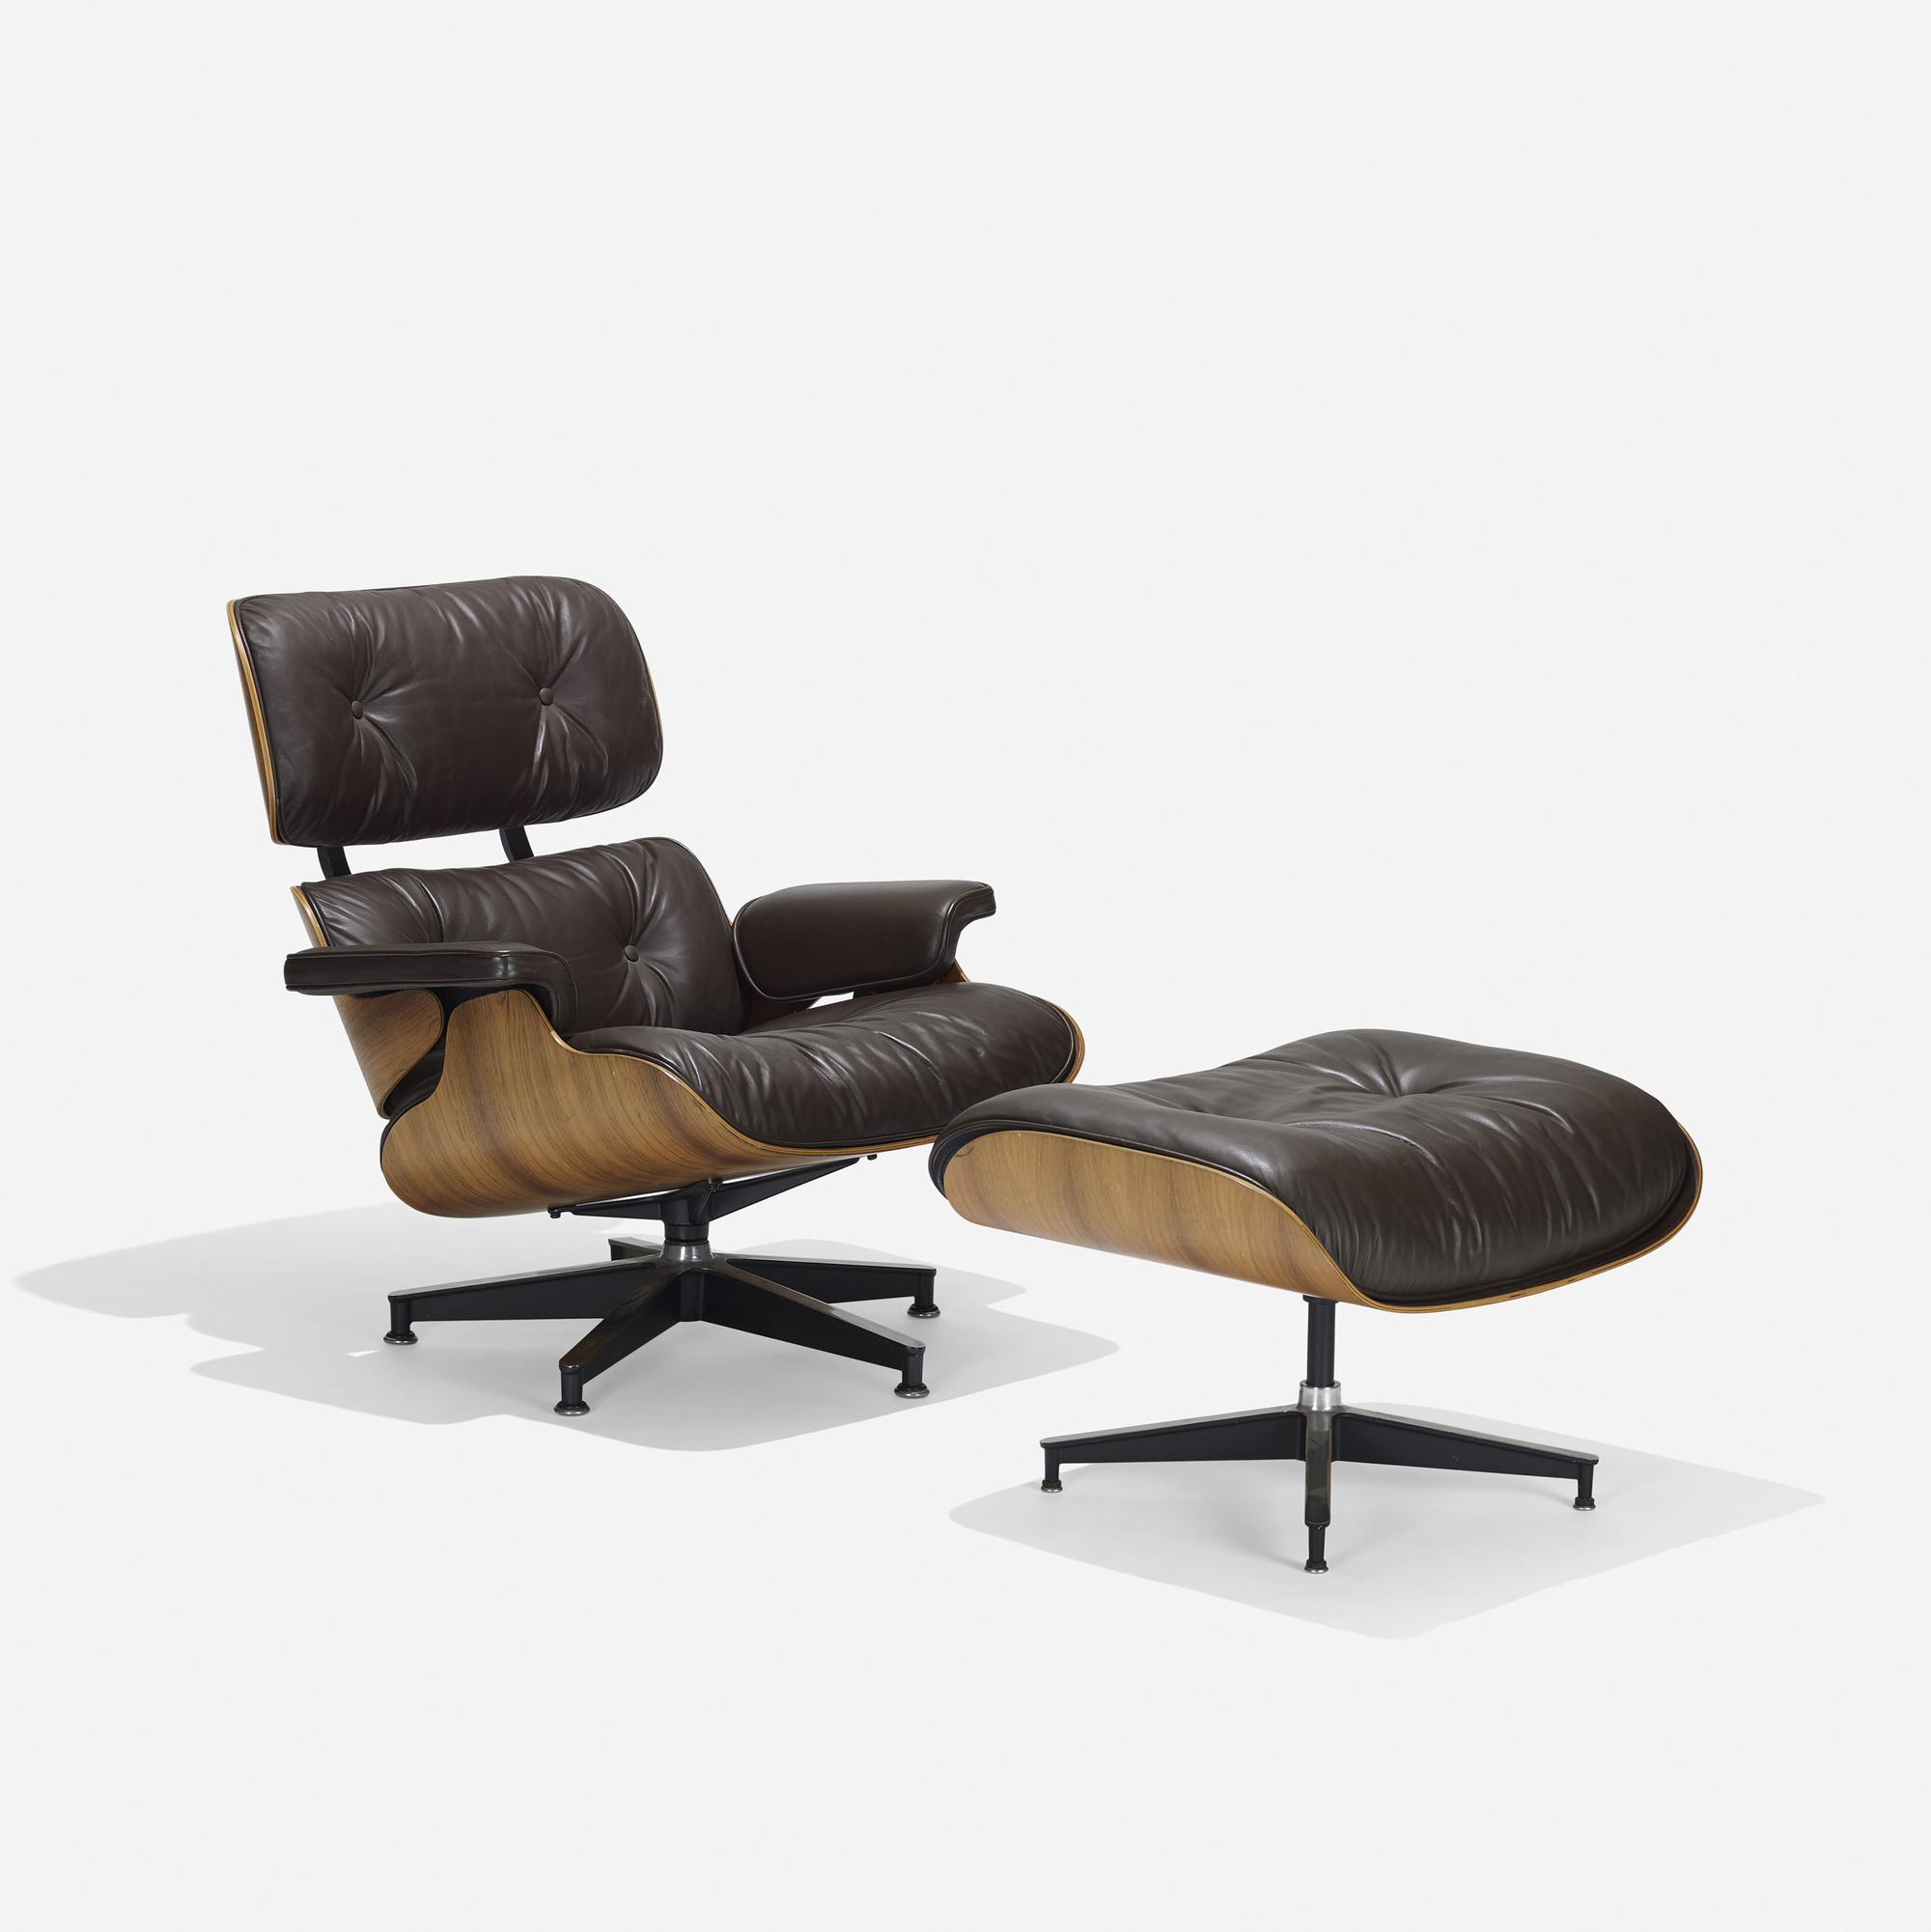 100 Charles and Ray Eames 670 lounge chair and 671 ottoman